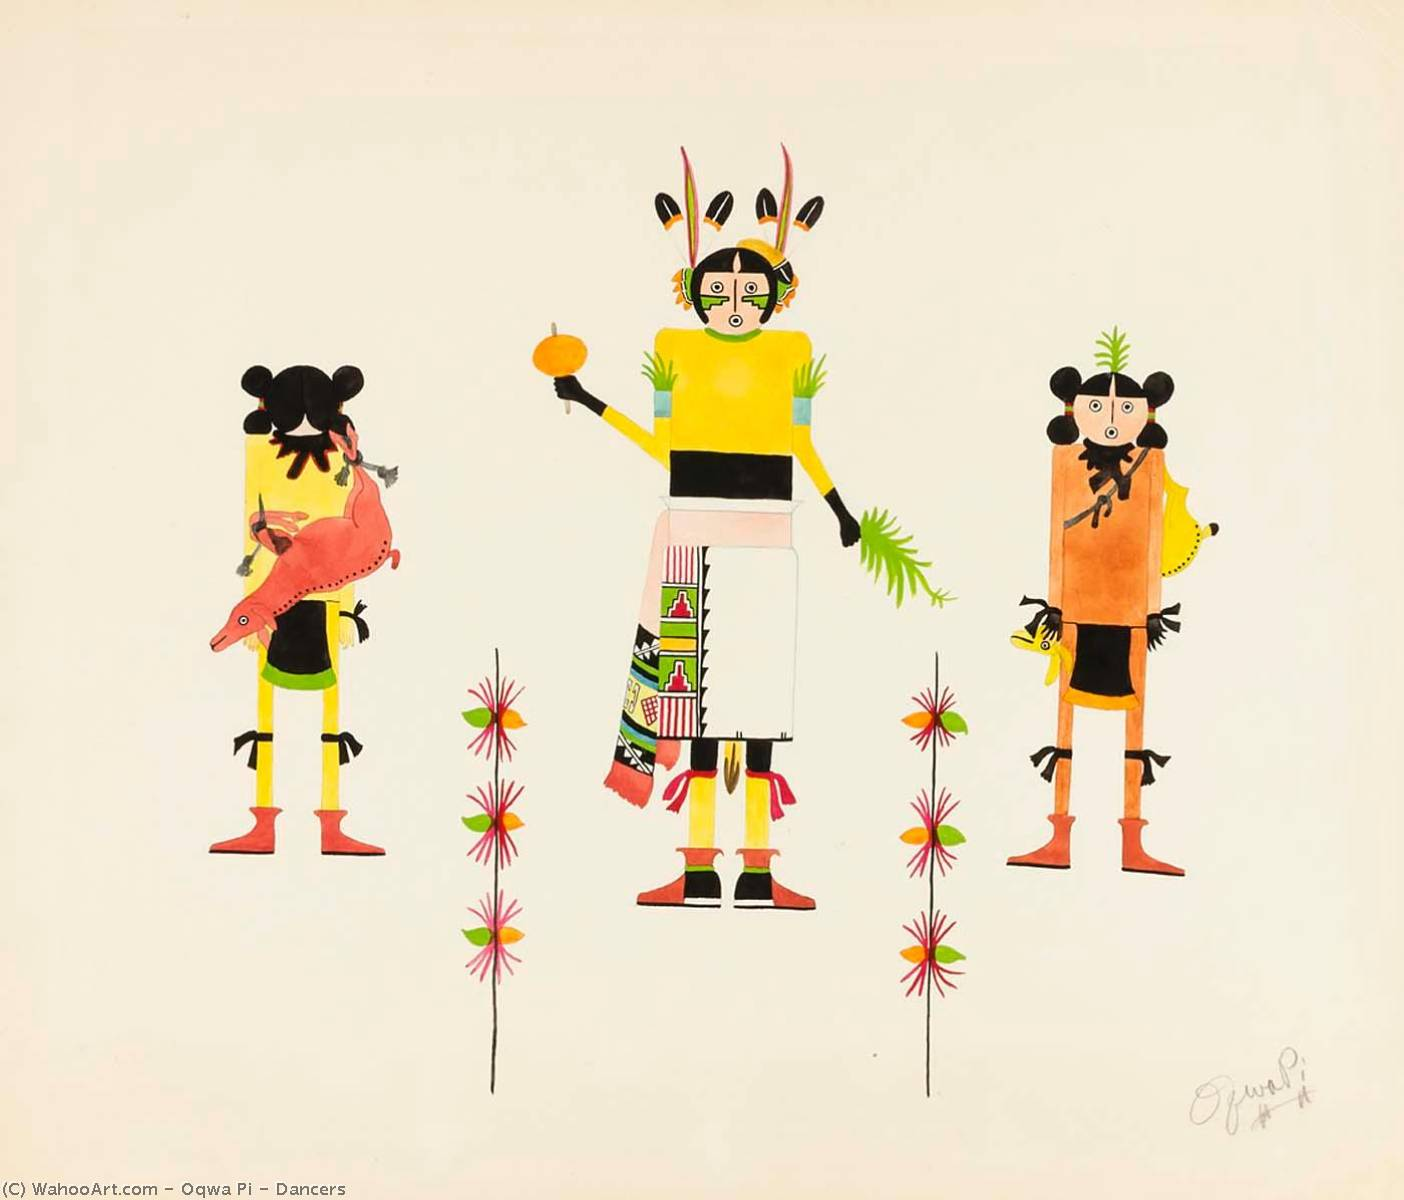 Wikioo.org - The Encyclopedia of Fine Arts - Painting, Artwork by Oqwa Pi - Dancers